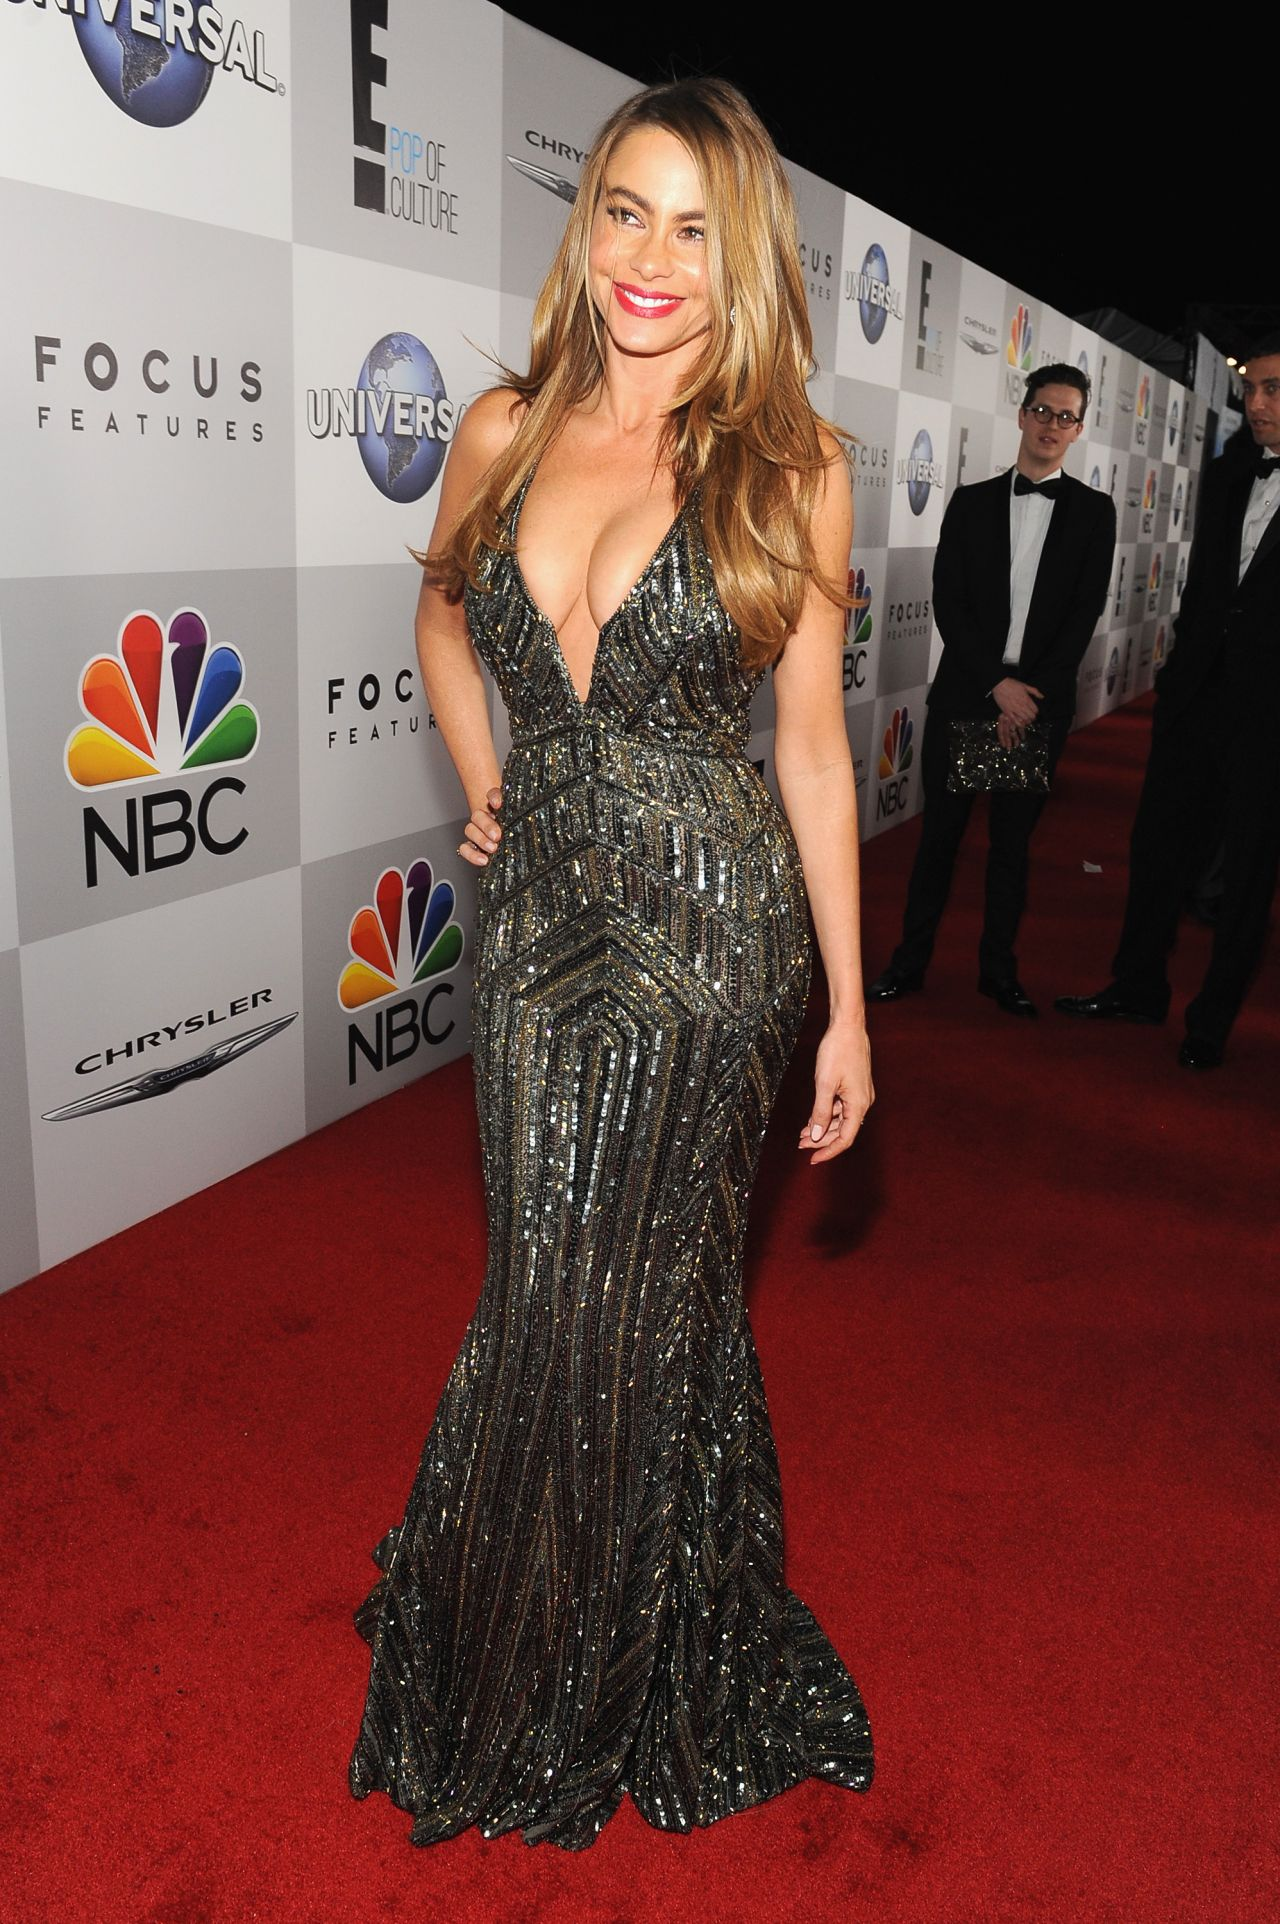 http://celebmafia.com/wp-content/uploads/2014/01/sofia-vergara-wears-zuhair-murad-at-nbc-universal-s-71st-annual-golden-globe-awards-after-party_9.jpg